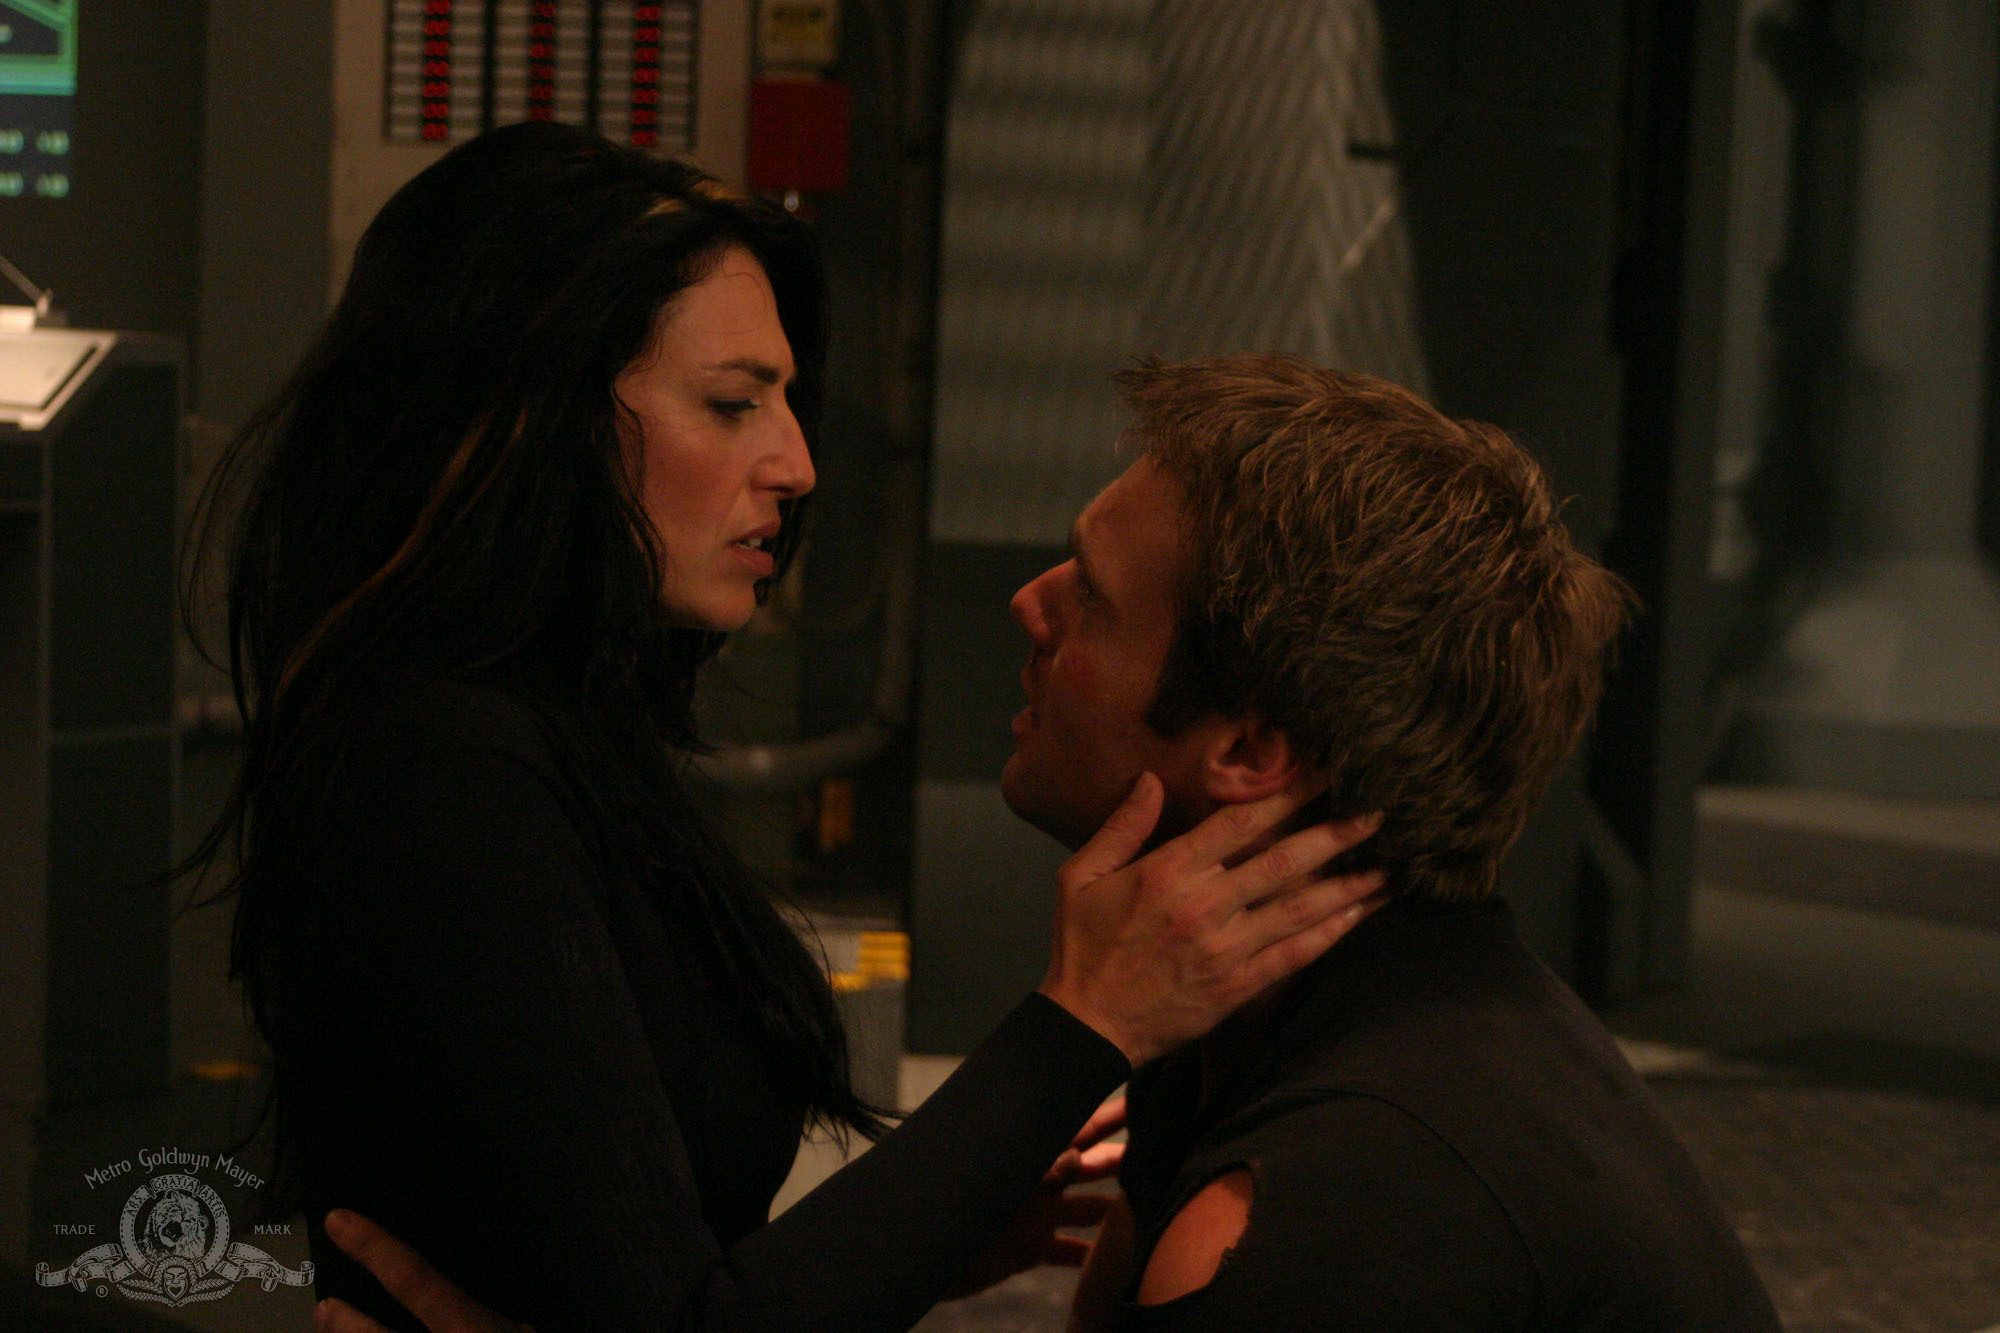 Daniel and Vala at Christmas in Unending. I just love them